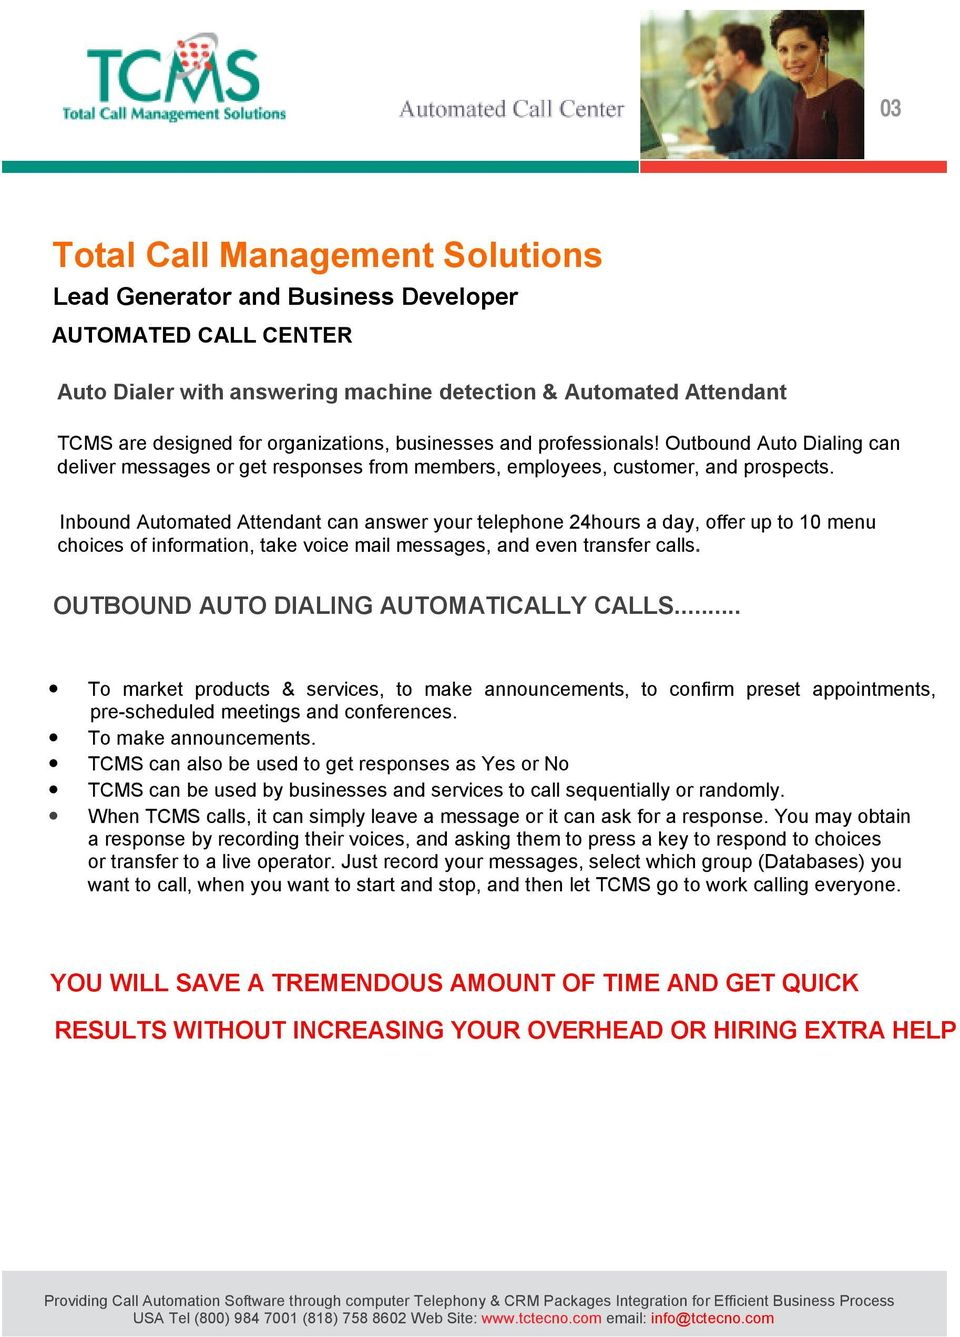 Inbound Automated Attendant can answer your telephone 24hours a day, offer up to 10 menu choices of information, take voice mail messages, and even transfer calls.